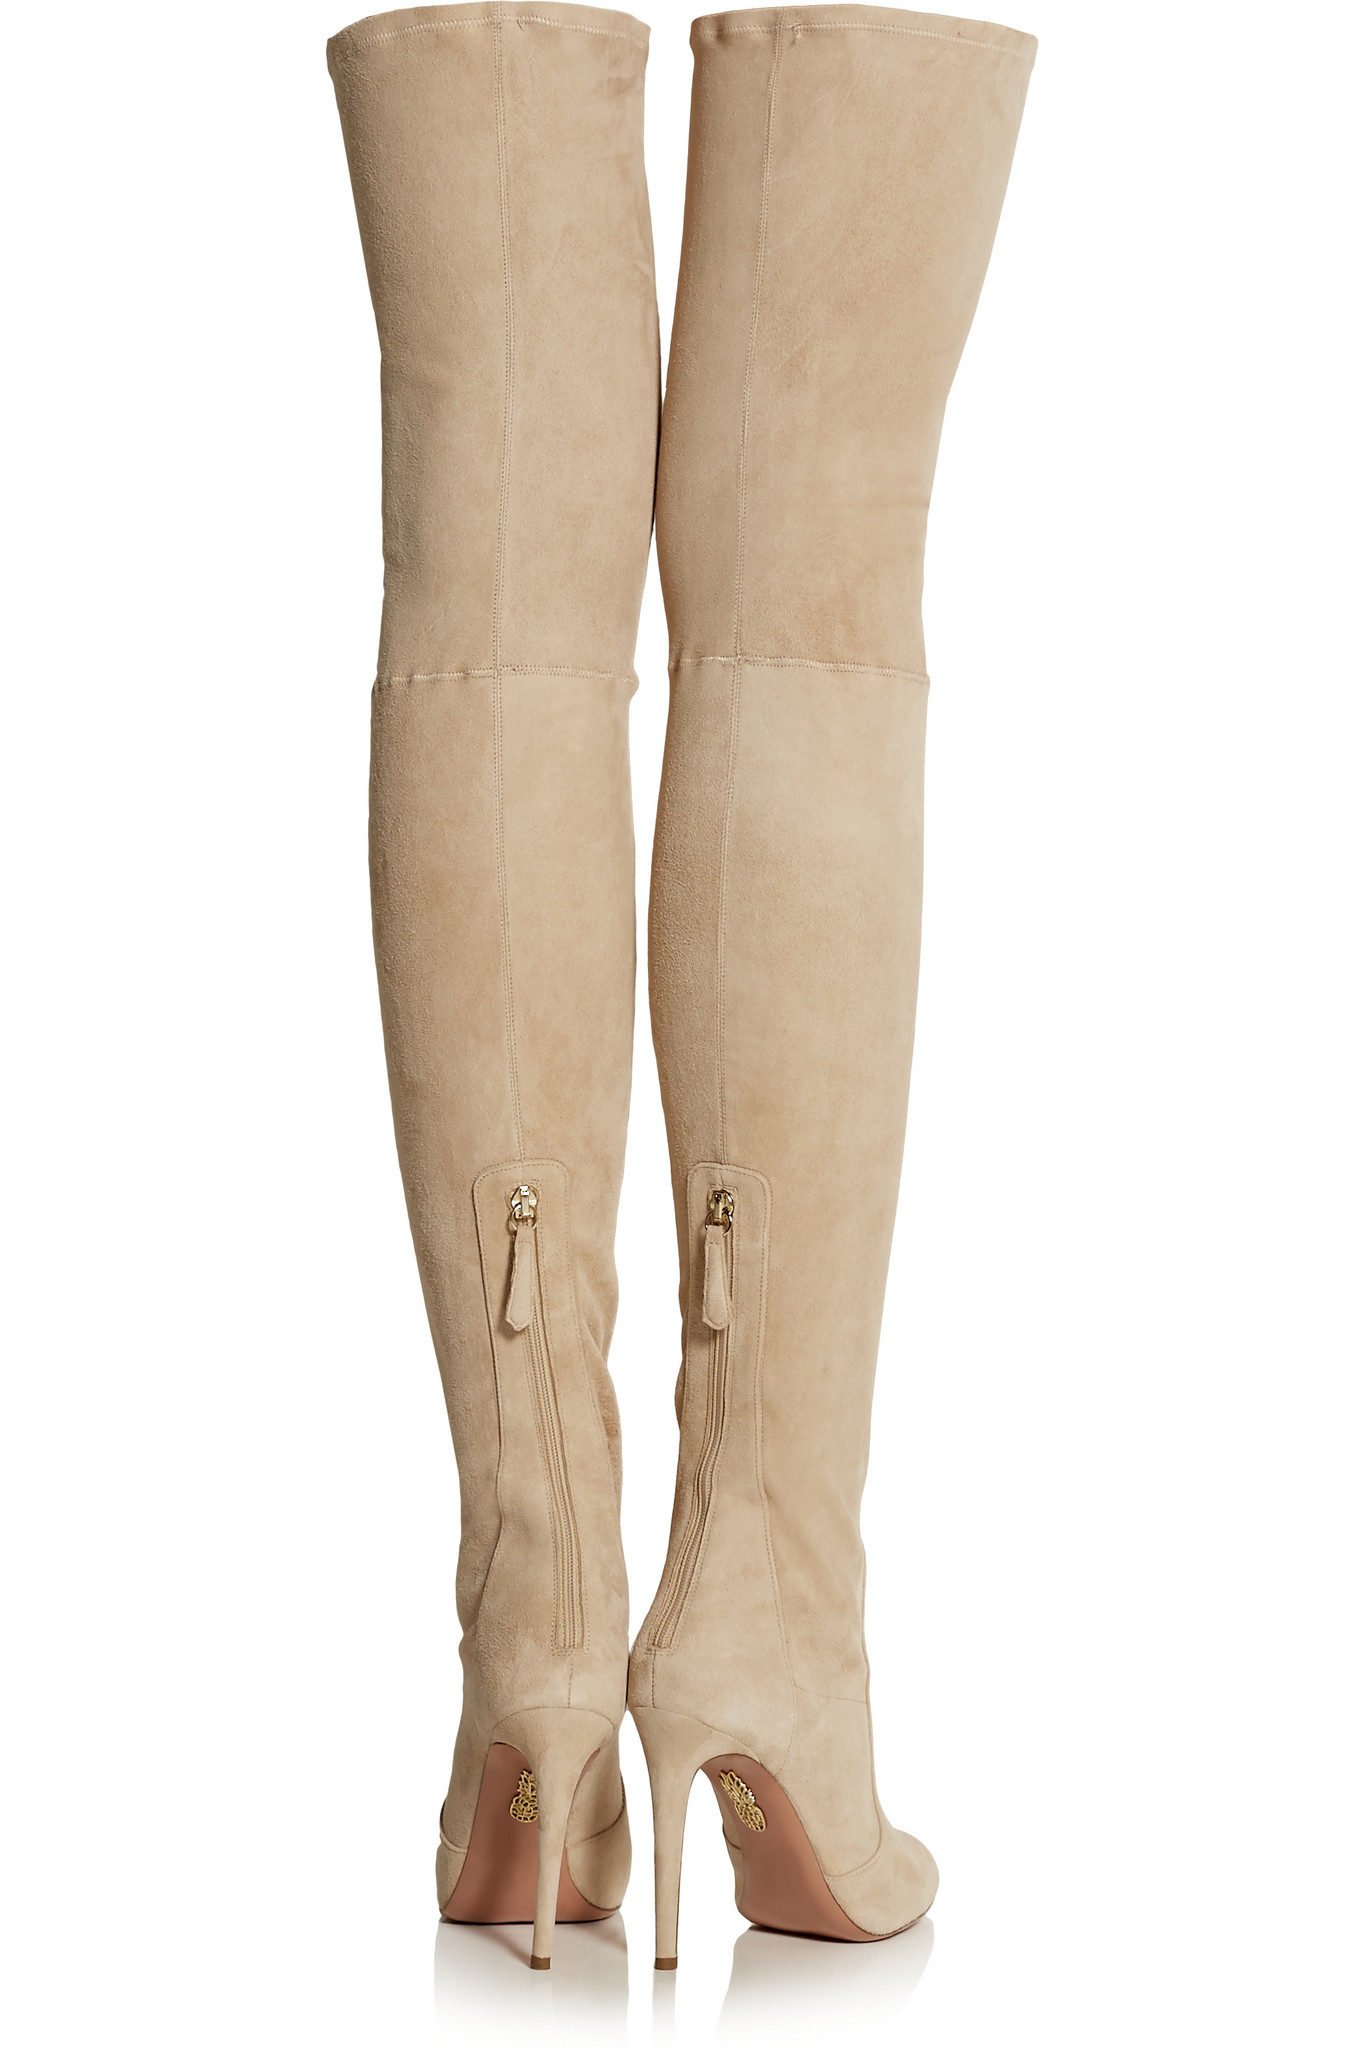 a785bad7fa5 Aquazzura Suede Over-the-knee Boots in Natural - Lyst